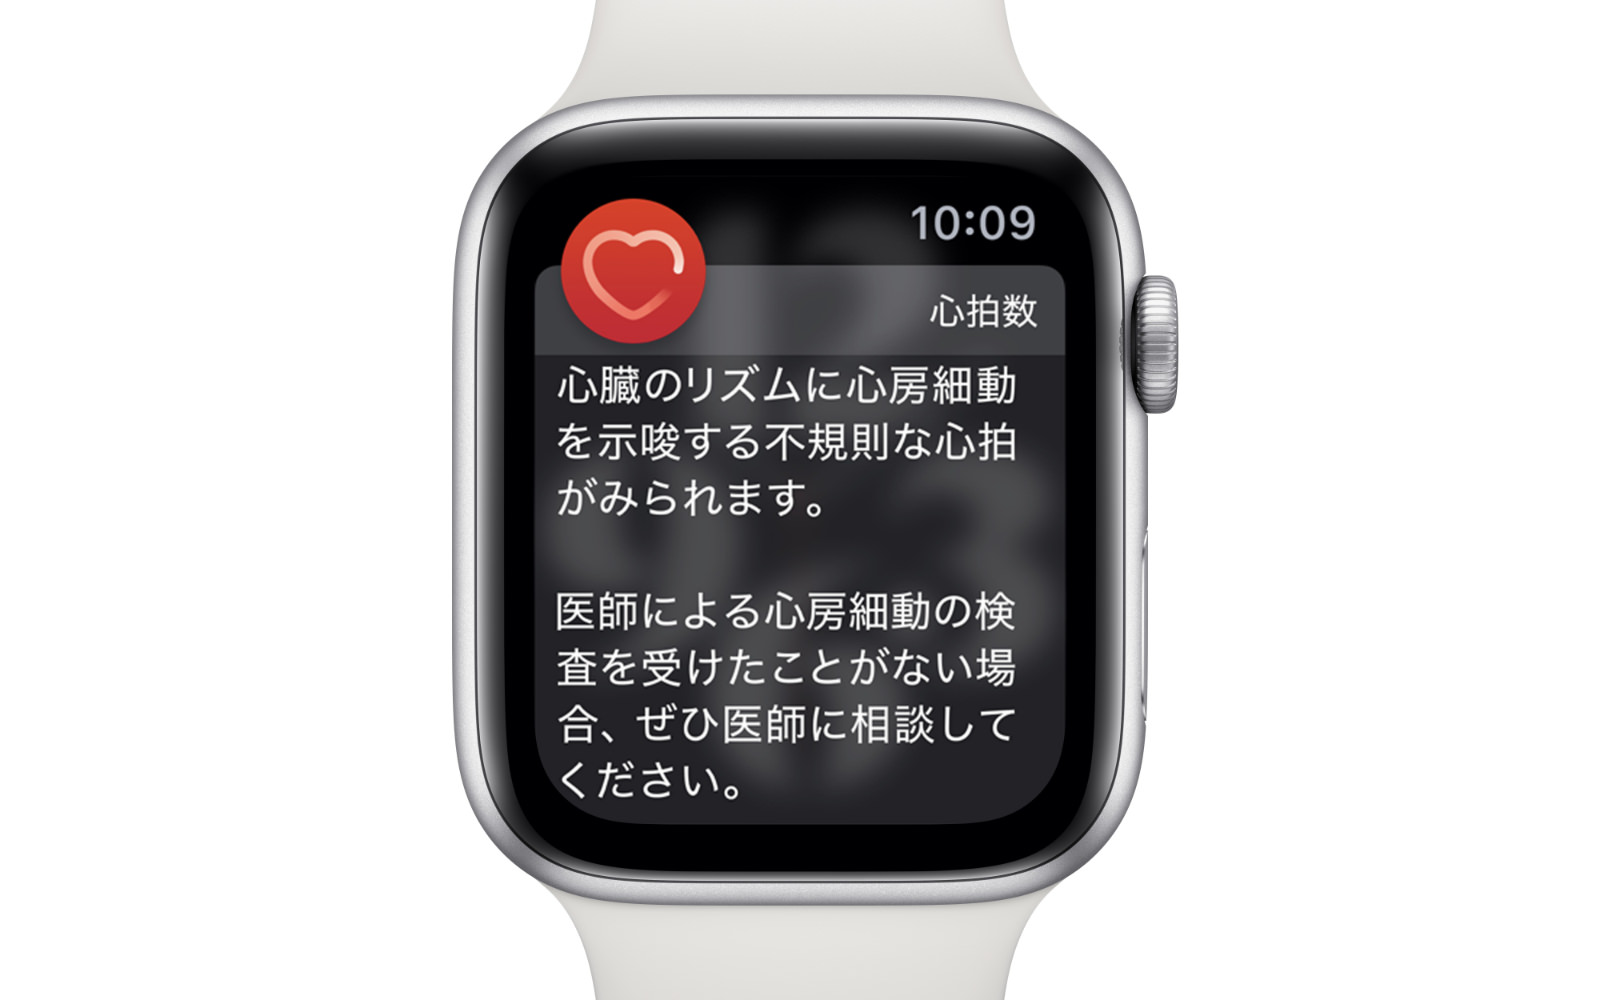 Apple watch alerts heartrate atrialfibrillation longlook